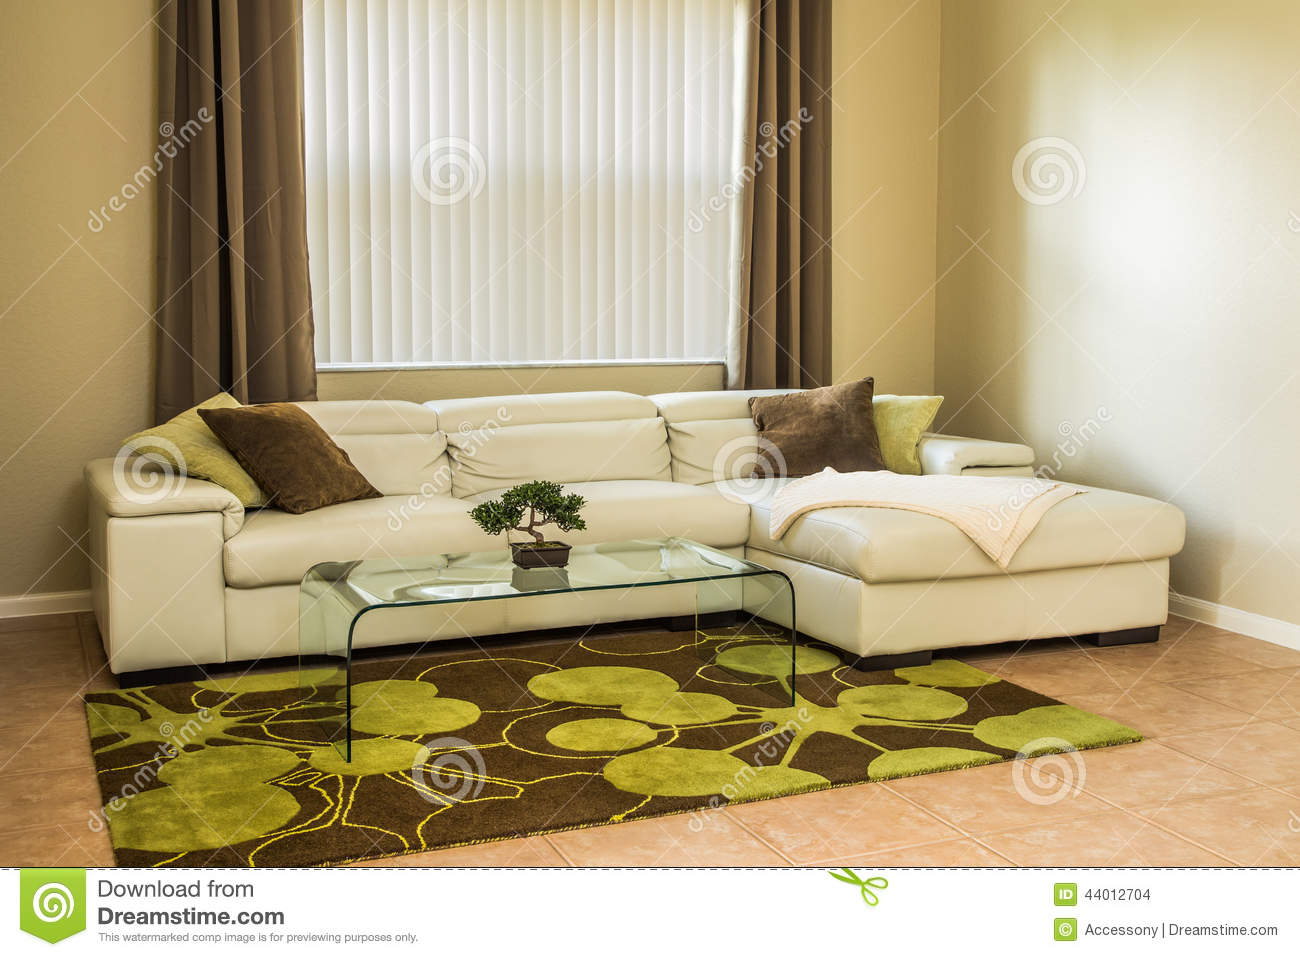 Cozy Living Room In Olive Green Colors Stock Photo